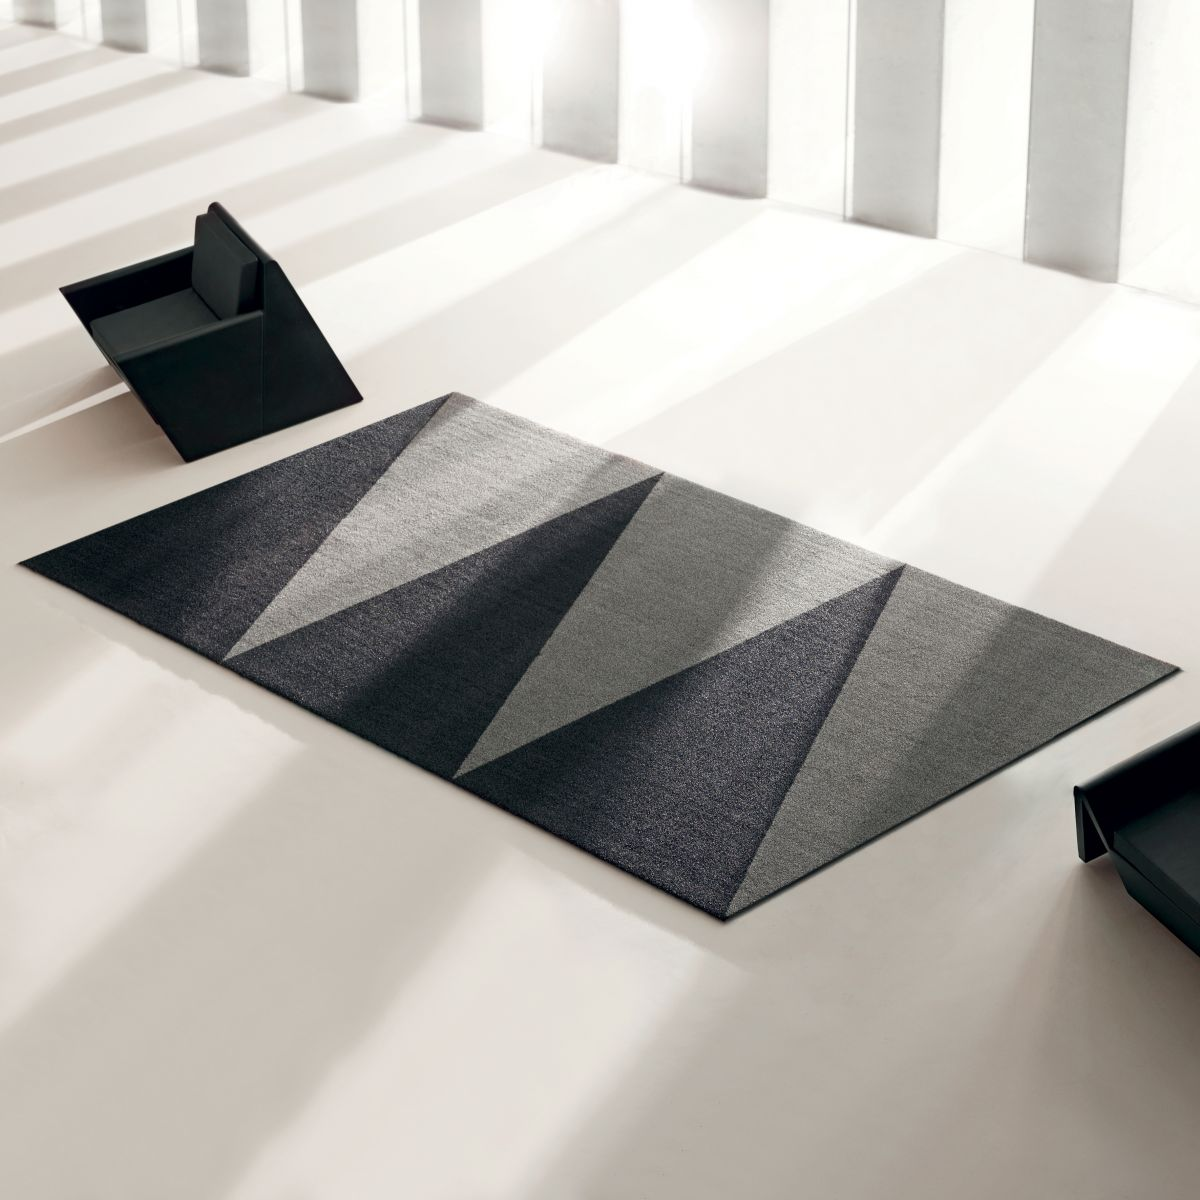 tapis contemporain design overlap vondom zendart design. Black Bedroom Furniture Sets. Home Design Ideas